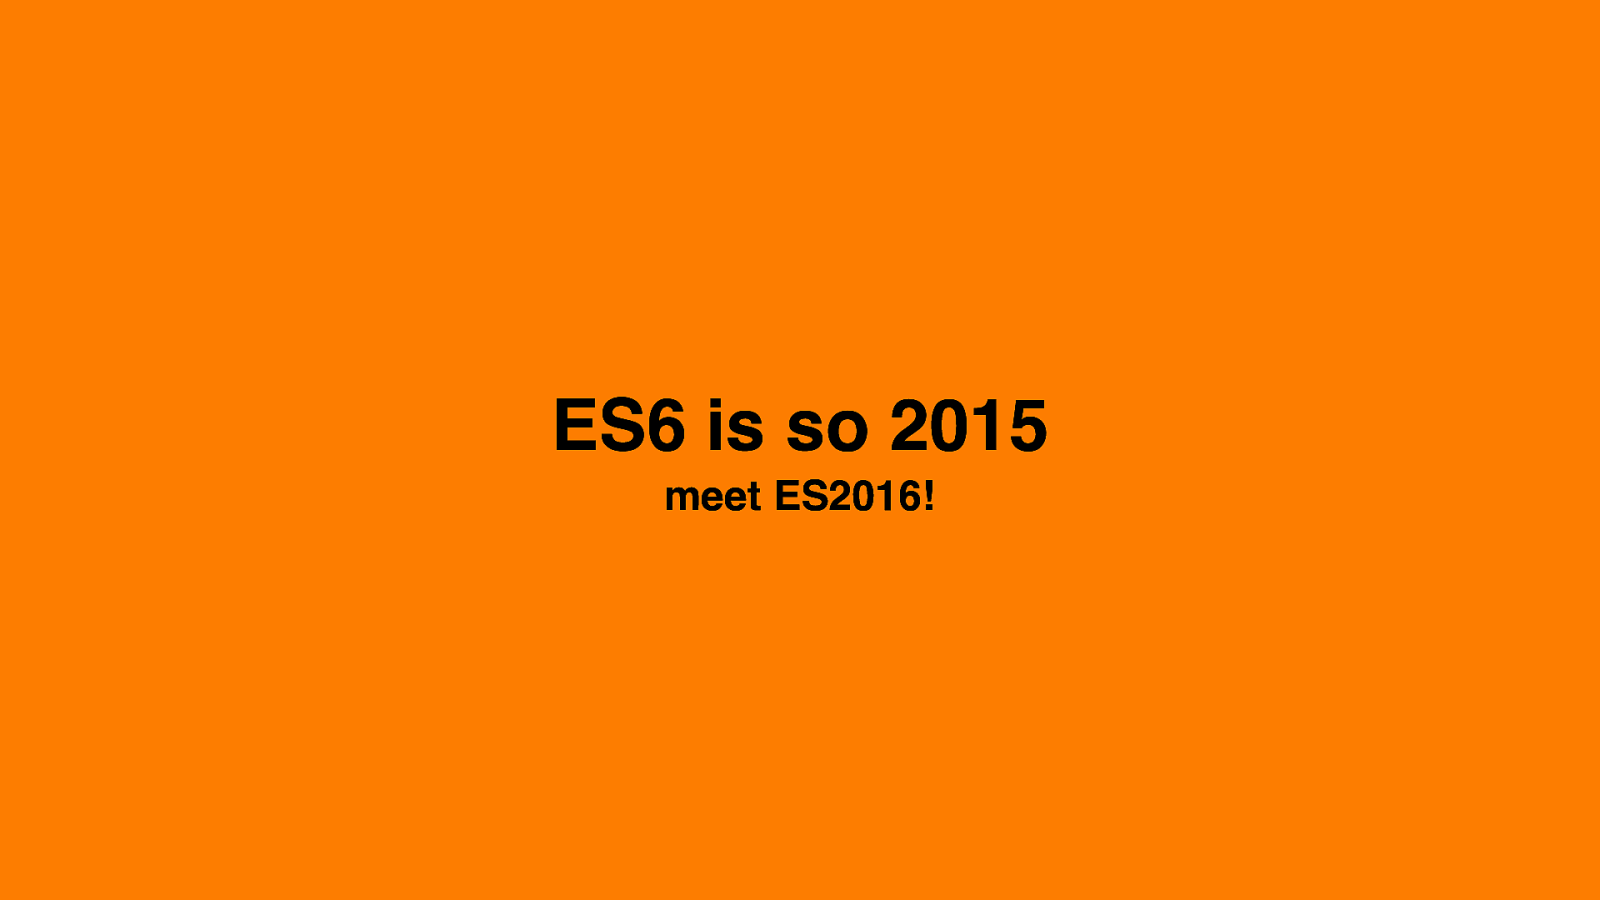 ECMAScript 6 is so 2015! Meet ES2016